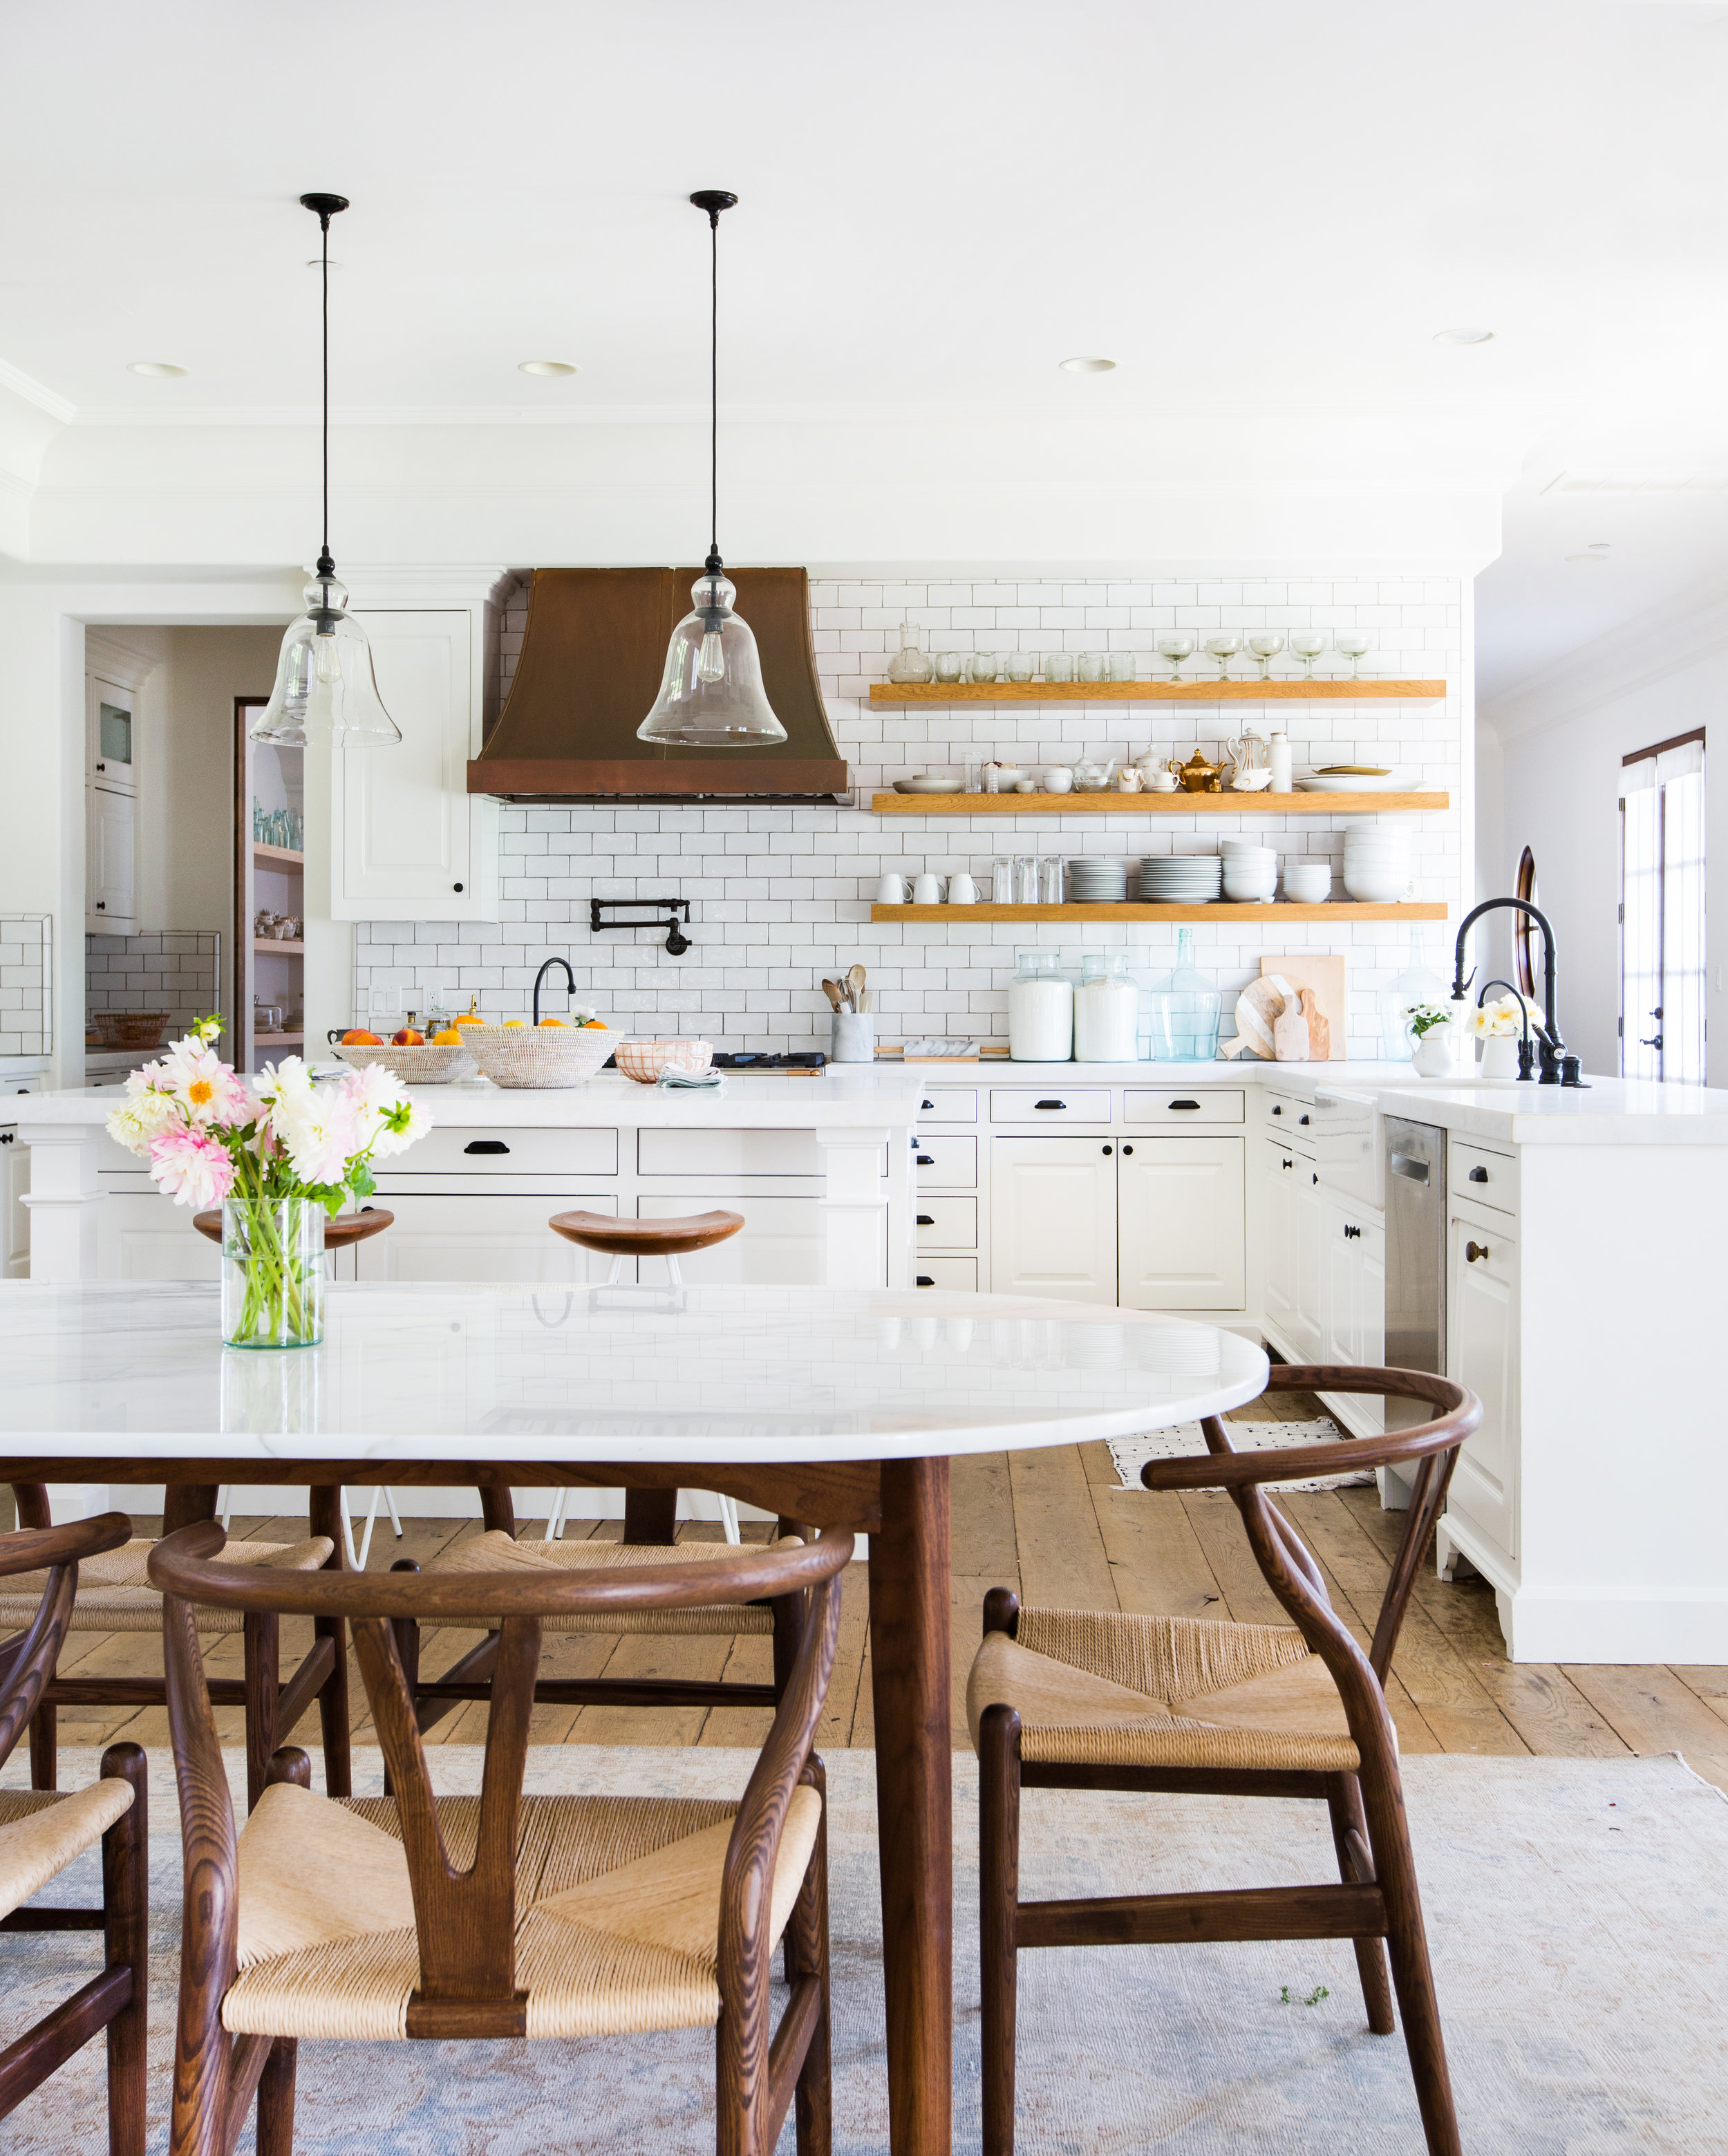 Here Are 5 Small Kitchen Ideas That We're Stealing From the Homes of Our Fave Celebs